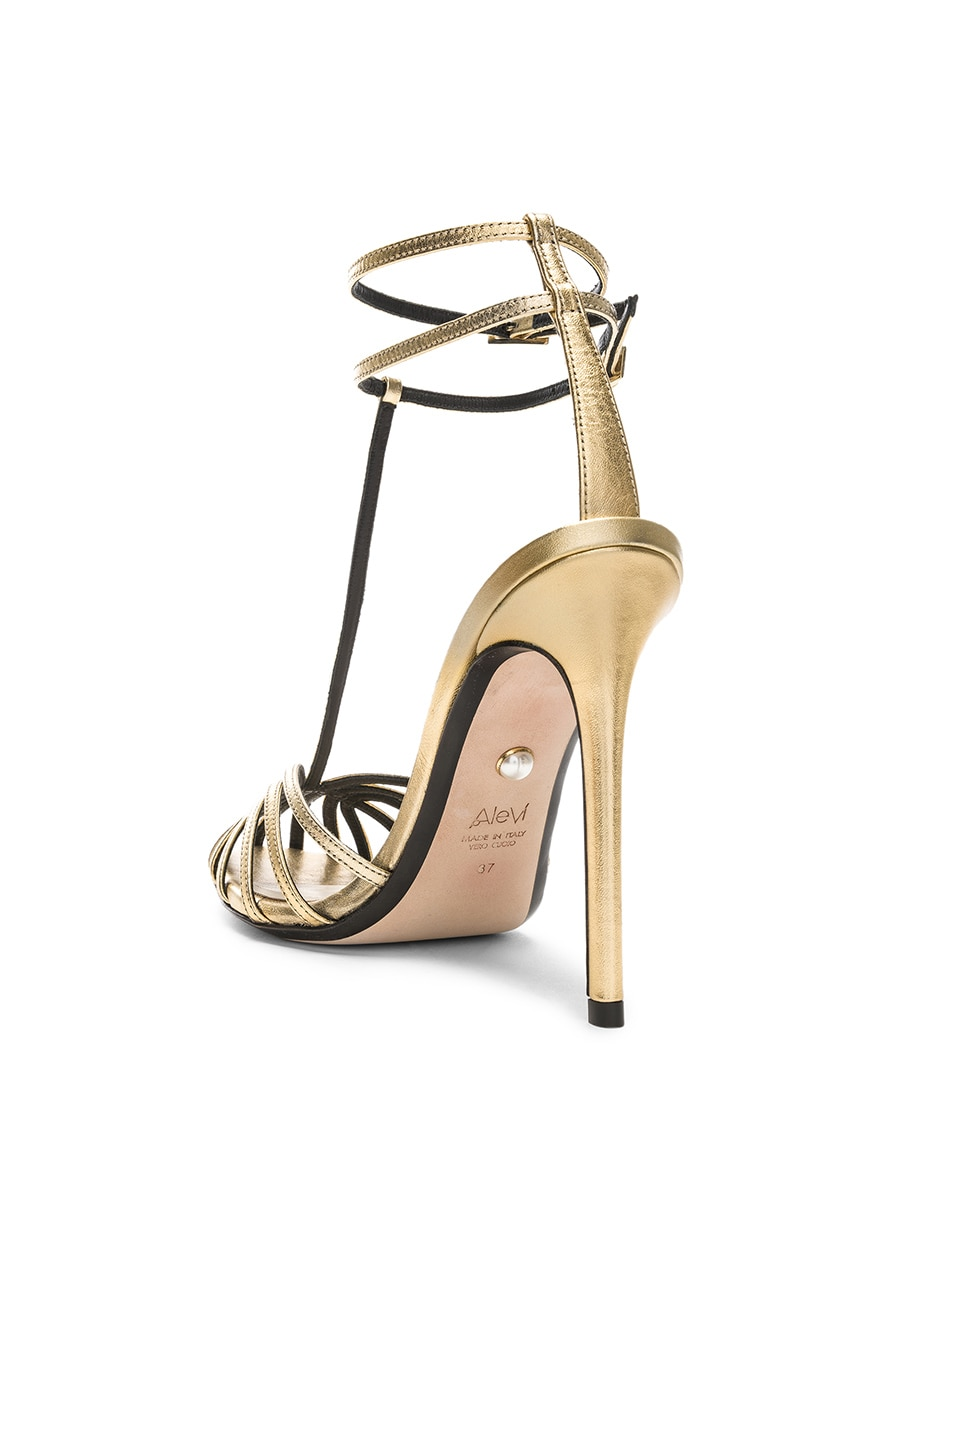 Image 3 of ALEVI Milano Alevi Stella Sandal in Shine Light Gold